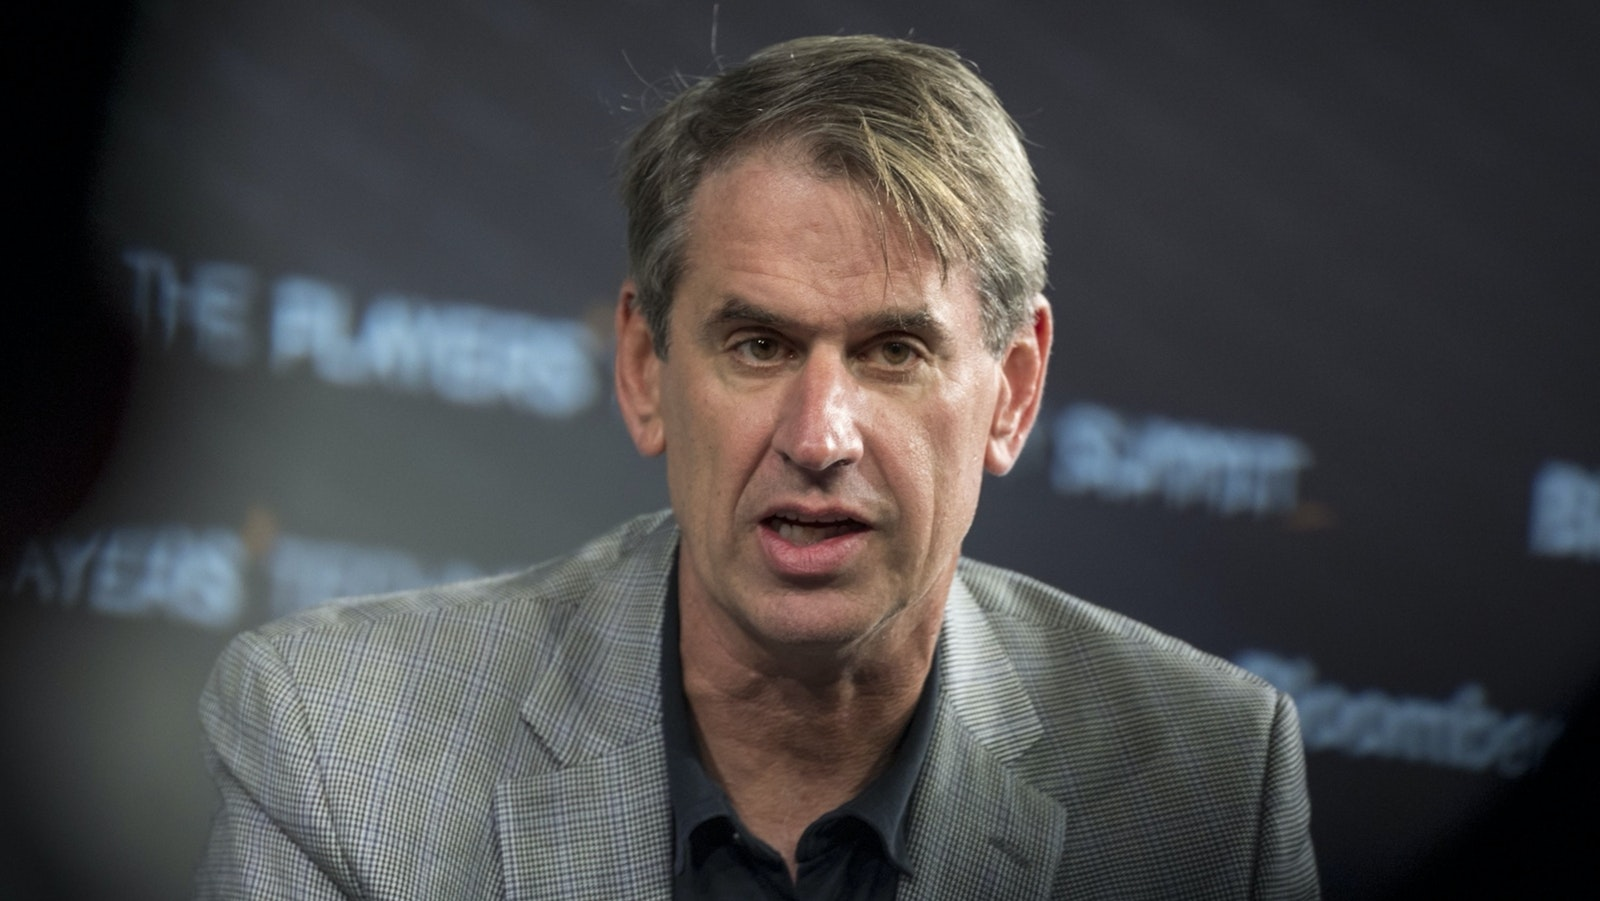 Benchmark's Bill Gurley. Photo by Bloomberg